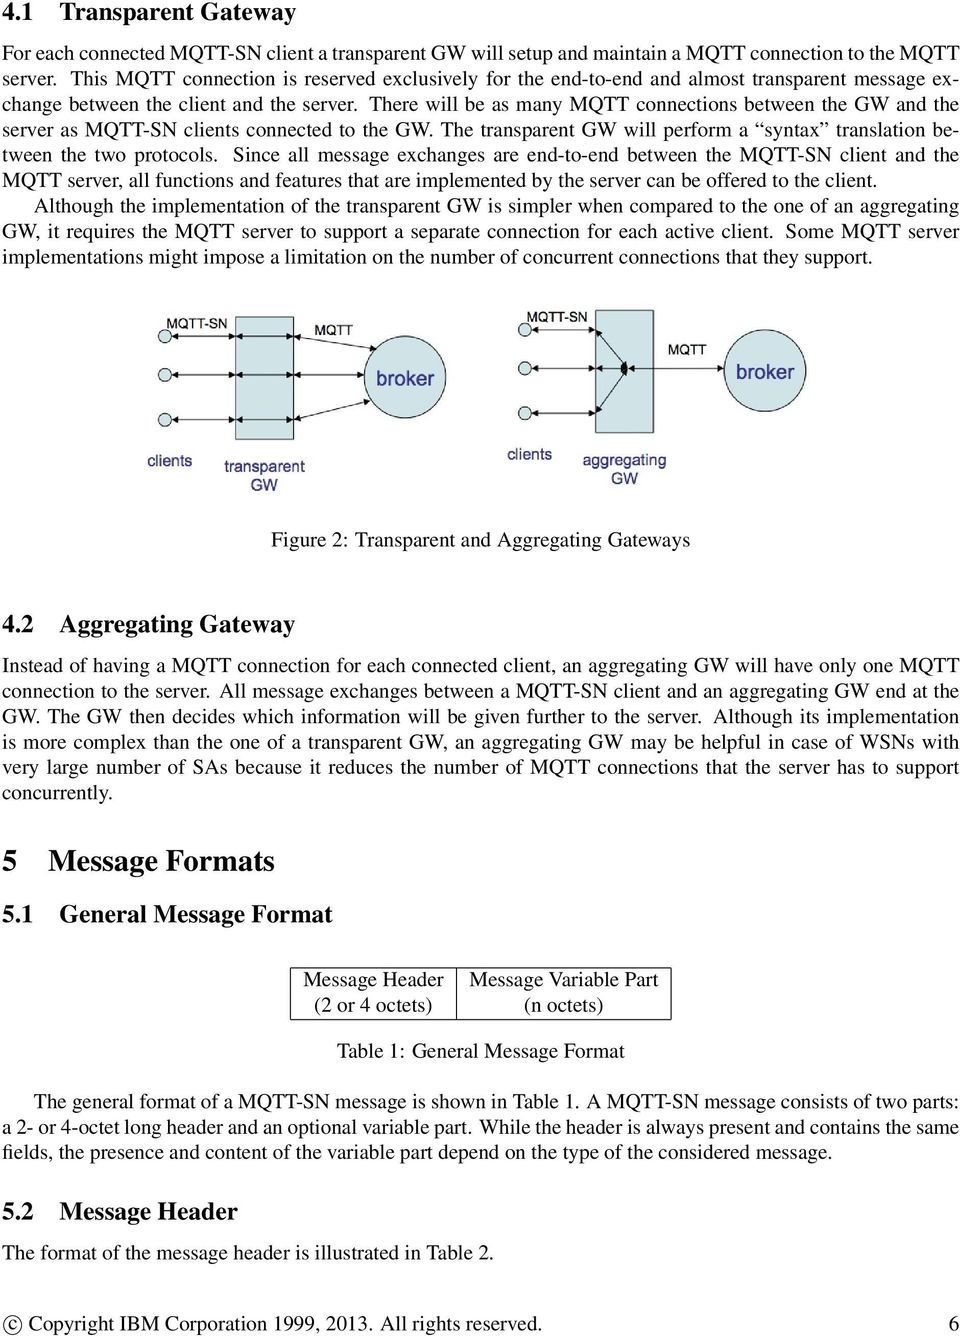 MQTT For Sensor Networks (MQTT-SN) Protocol Specification - PDF